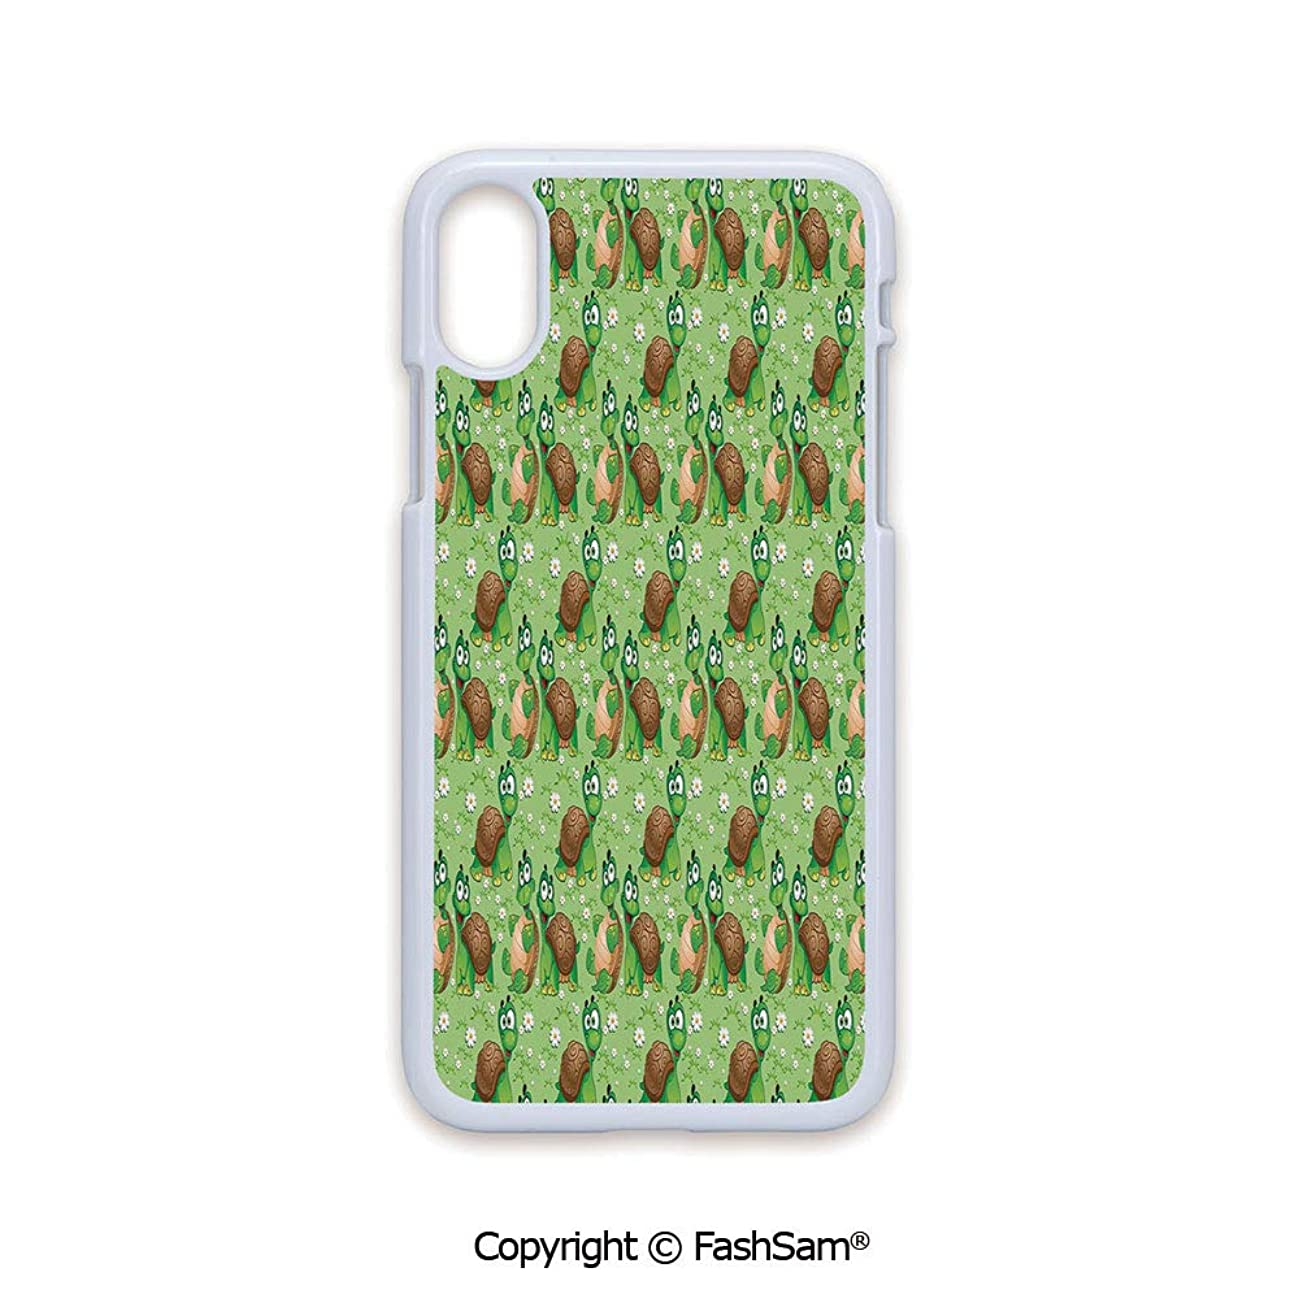 Plastic Rigid Mobile Phone case Compatible with iPhone X Black Edge Pattern with Cartoon Funny Turtles on Green Spring Meadow with Daisies Decorative 2D Print Hard Plastic Phone Case